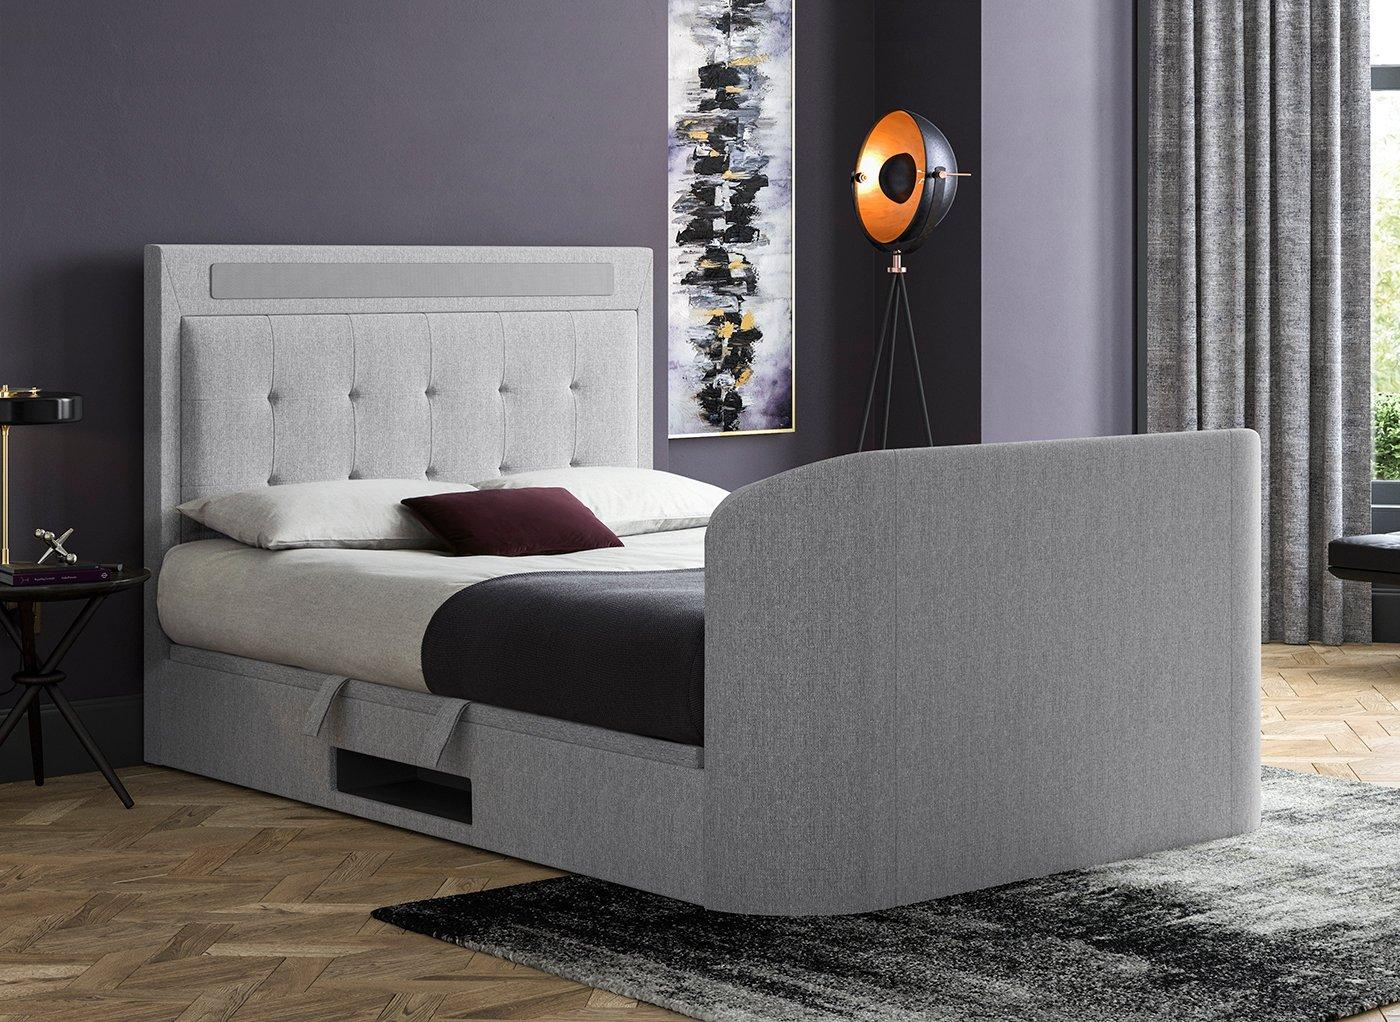 tokyo-upholstered-bed-frame-with-43--smart-led-tv---5-1-surround-sound-system